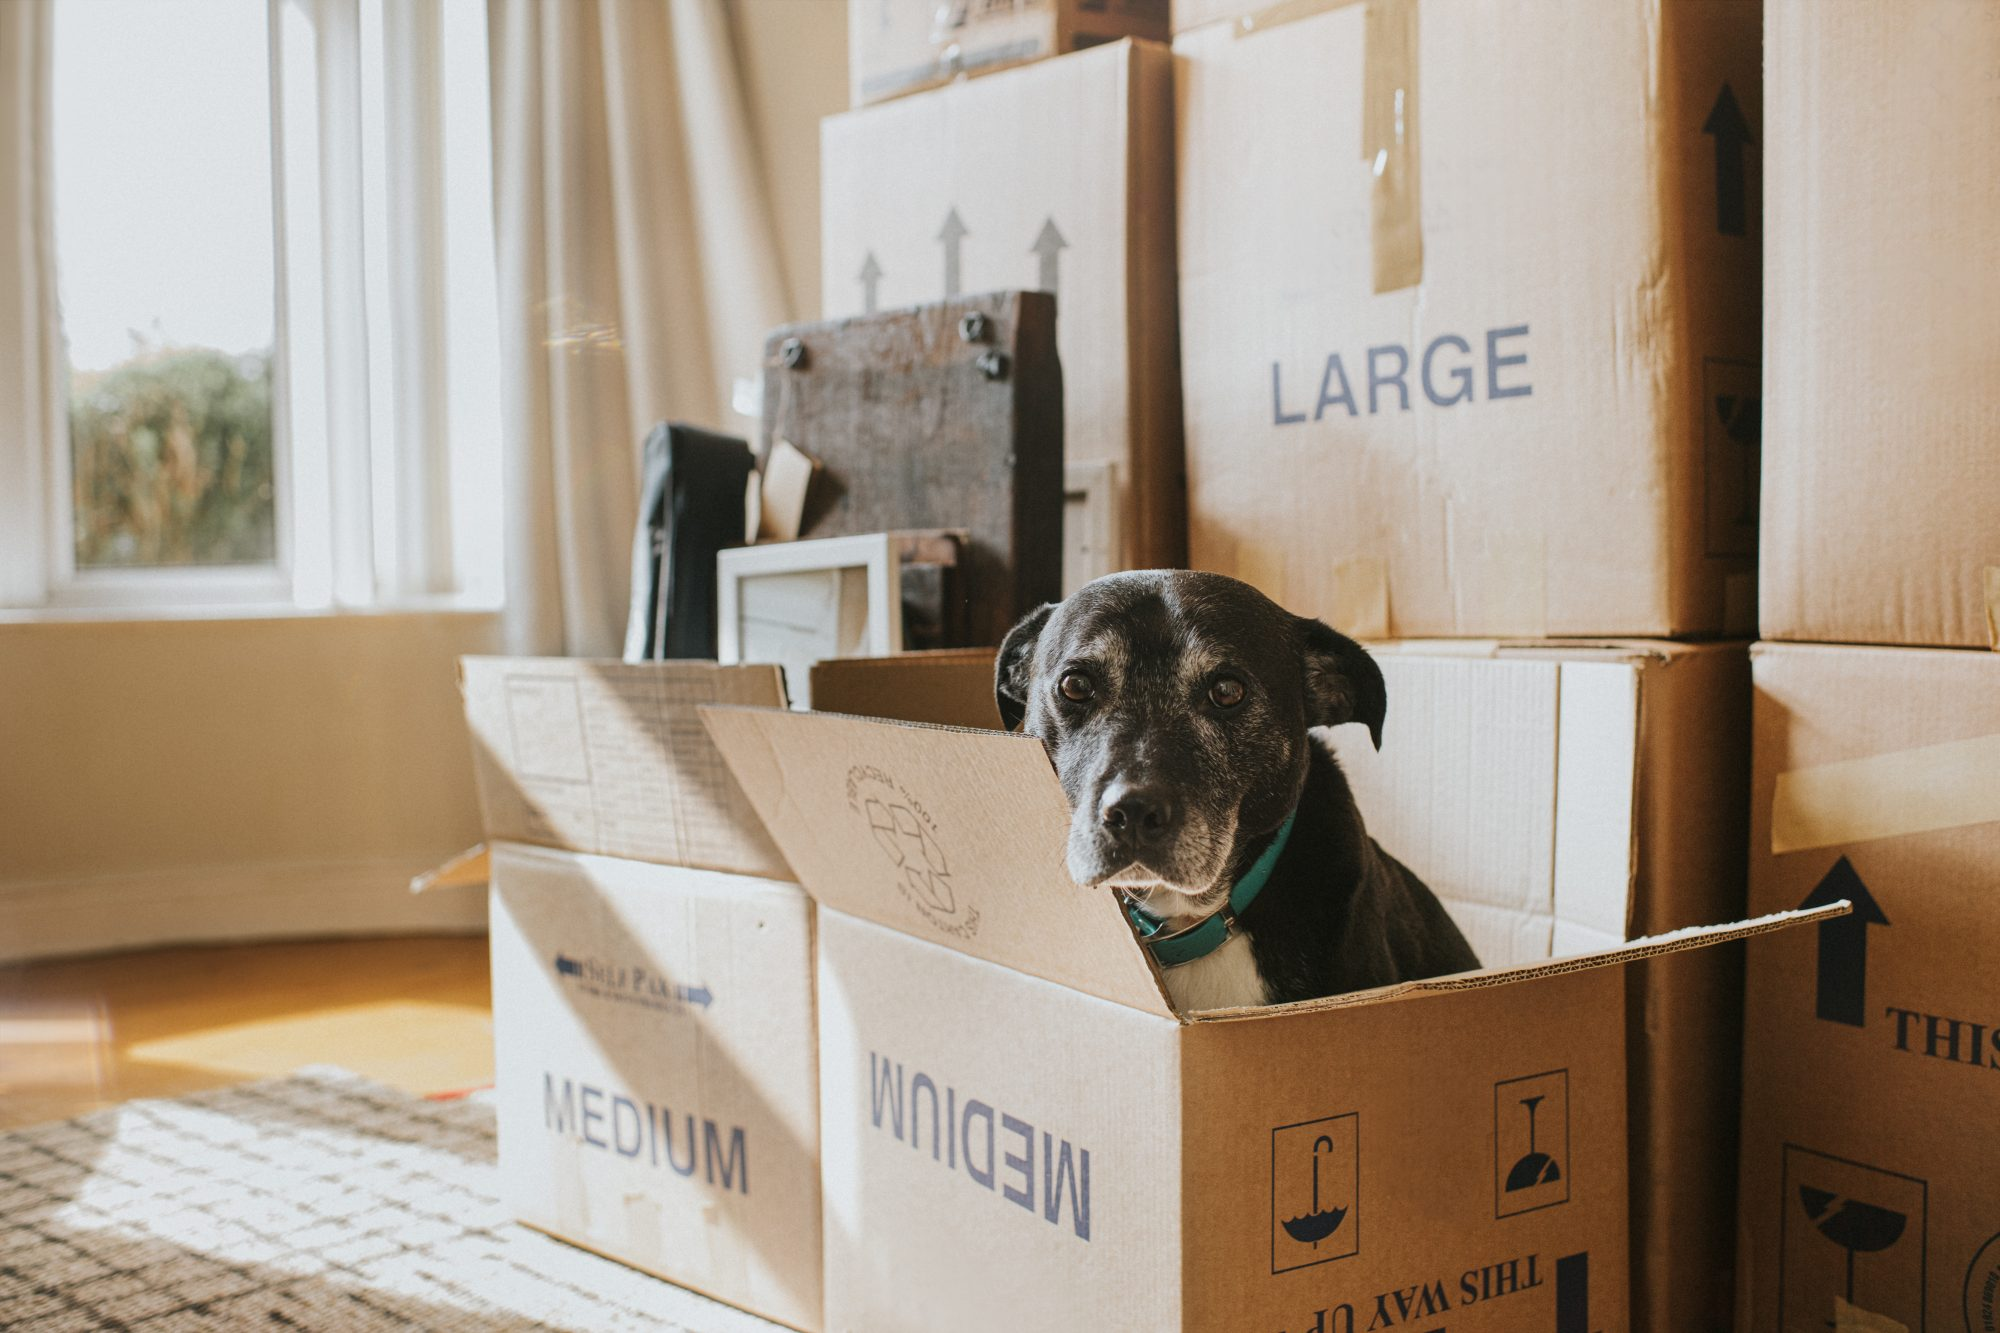 A Dog in a Cardboard Box on Moving Day